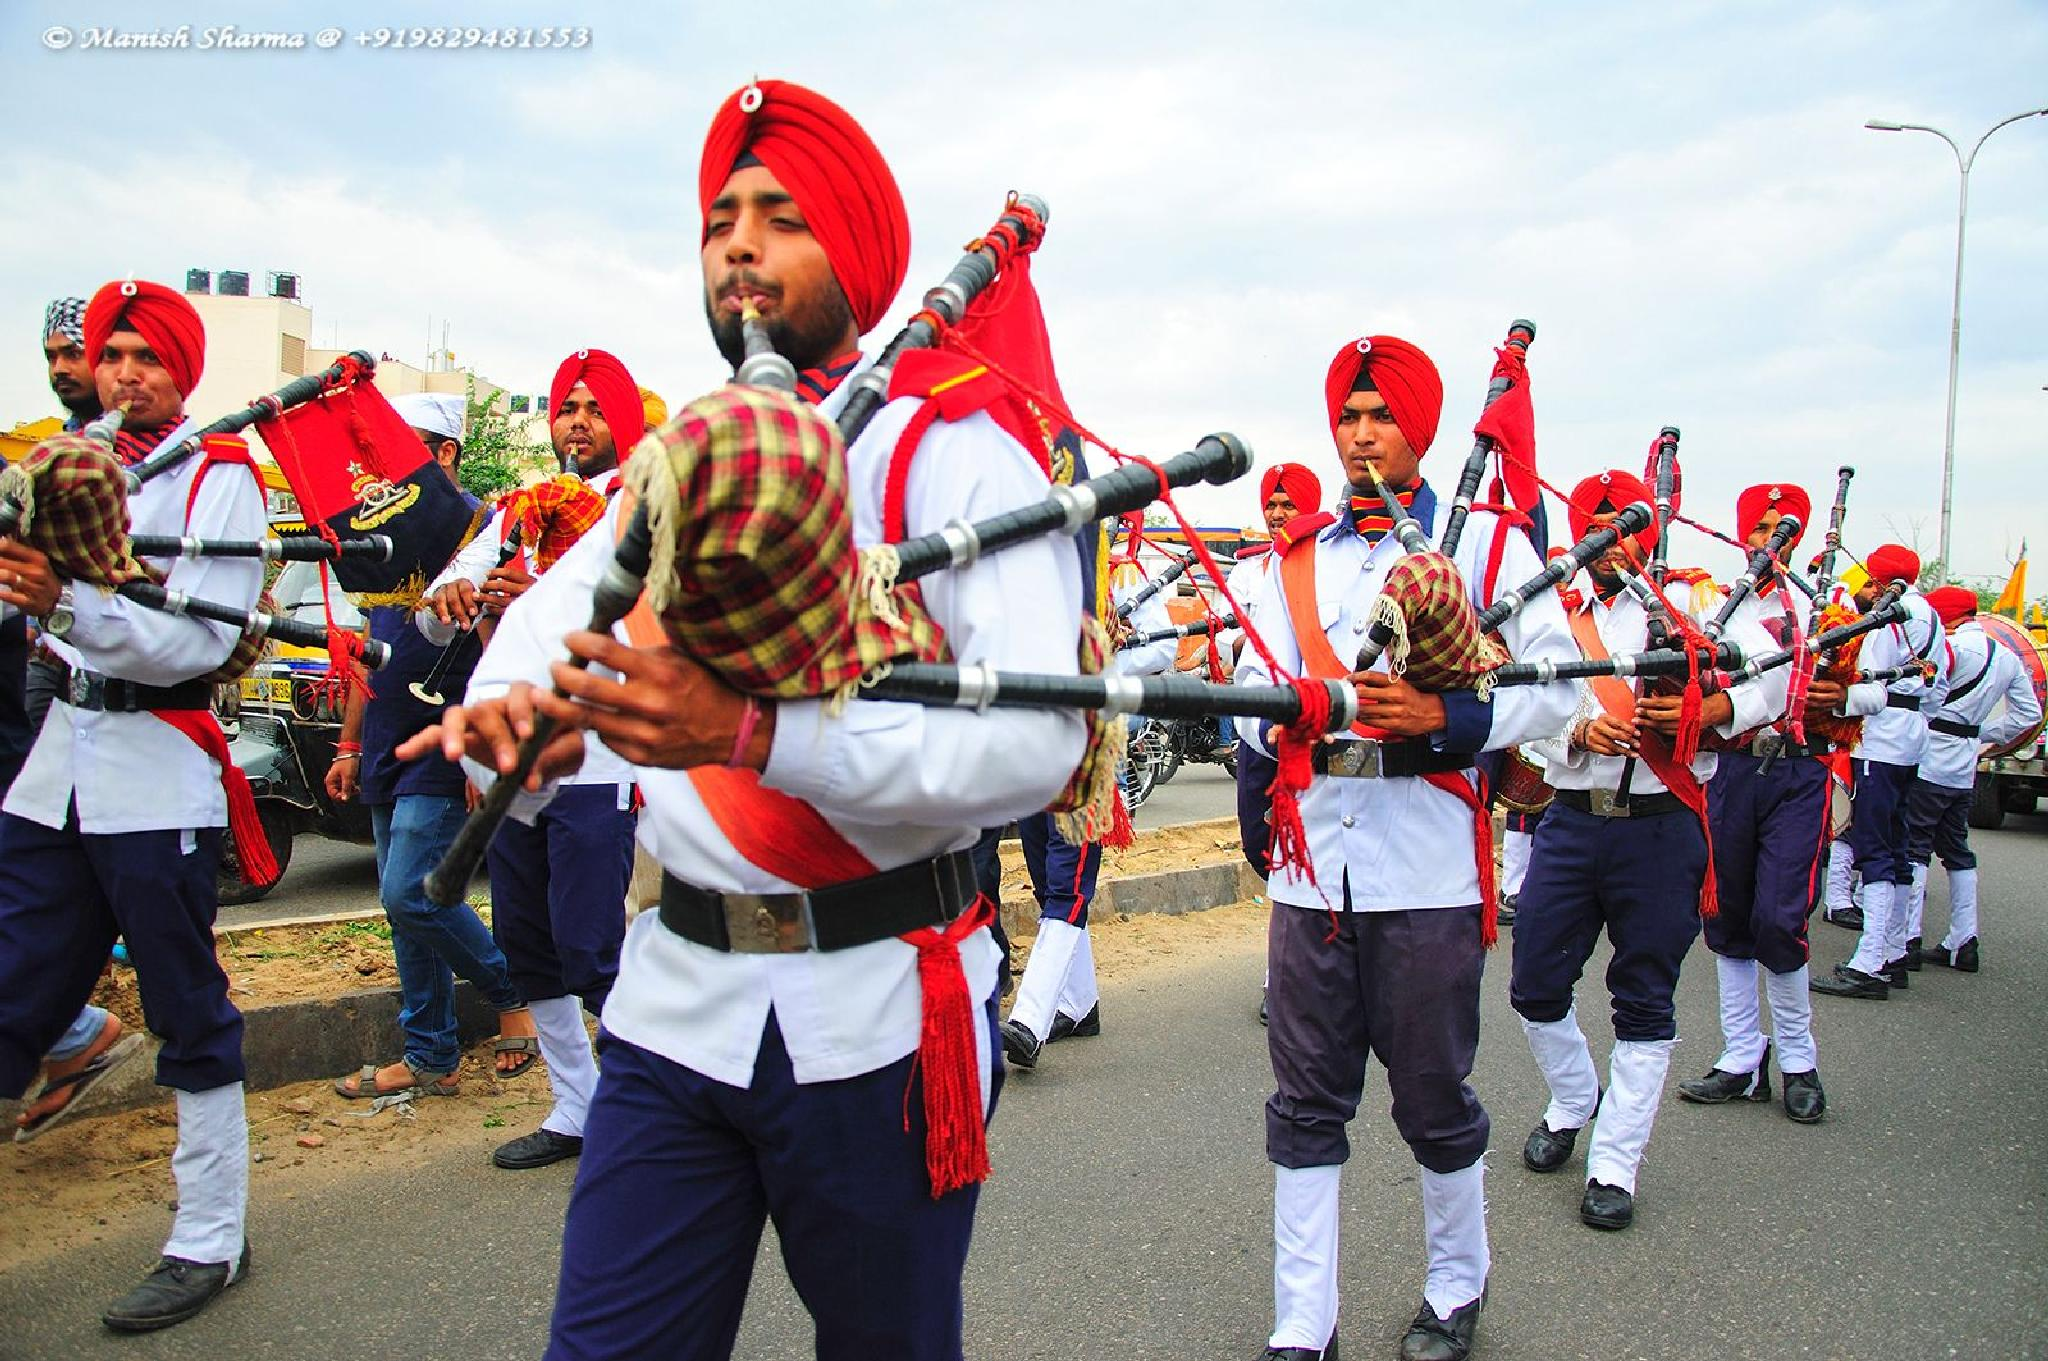 Military band in Pink City, Jaipur, India by Maneesh Sharma